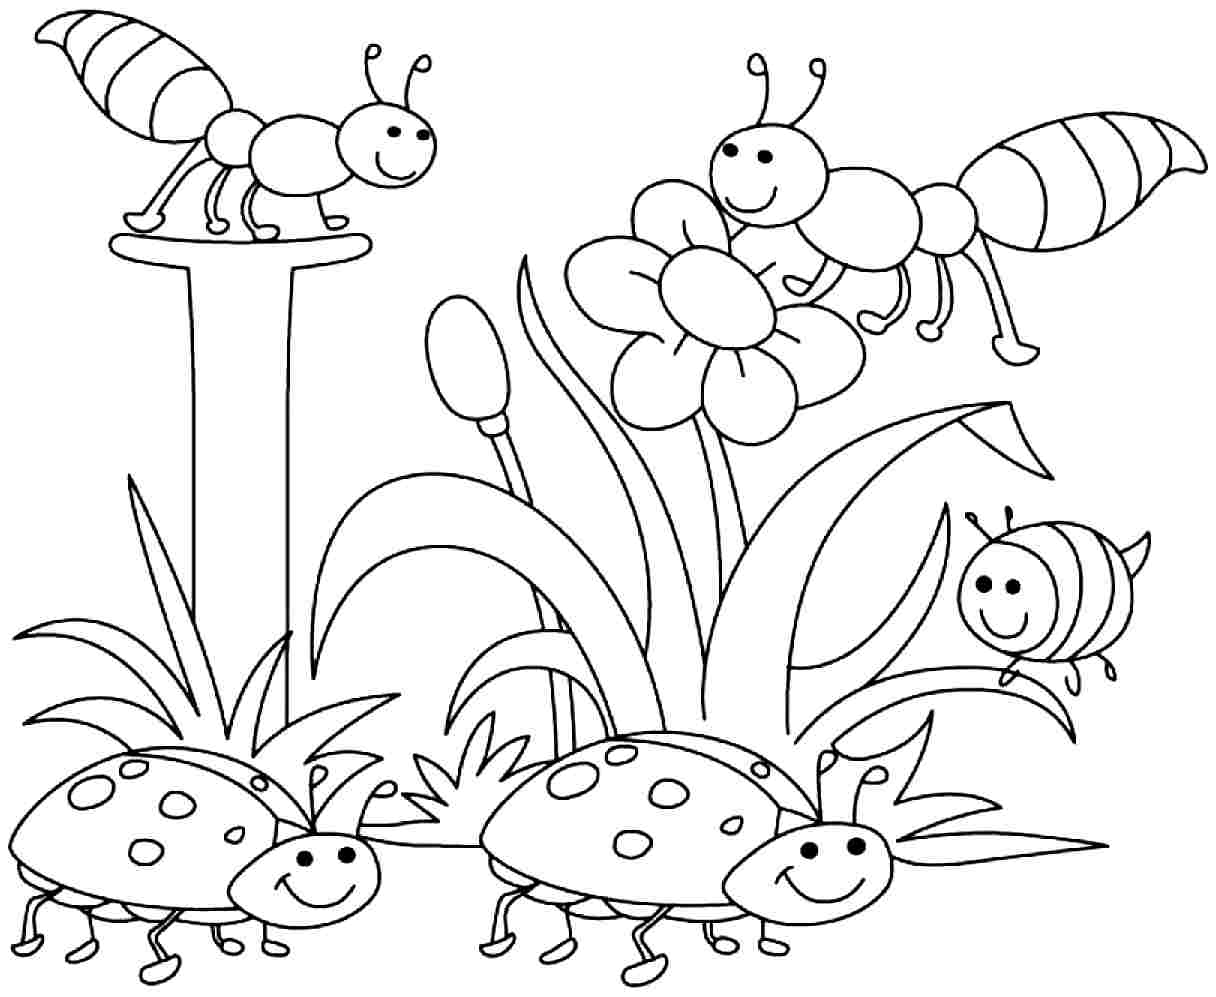 Bugs Coloring Pages Preschool At Getcolorings